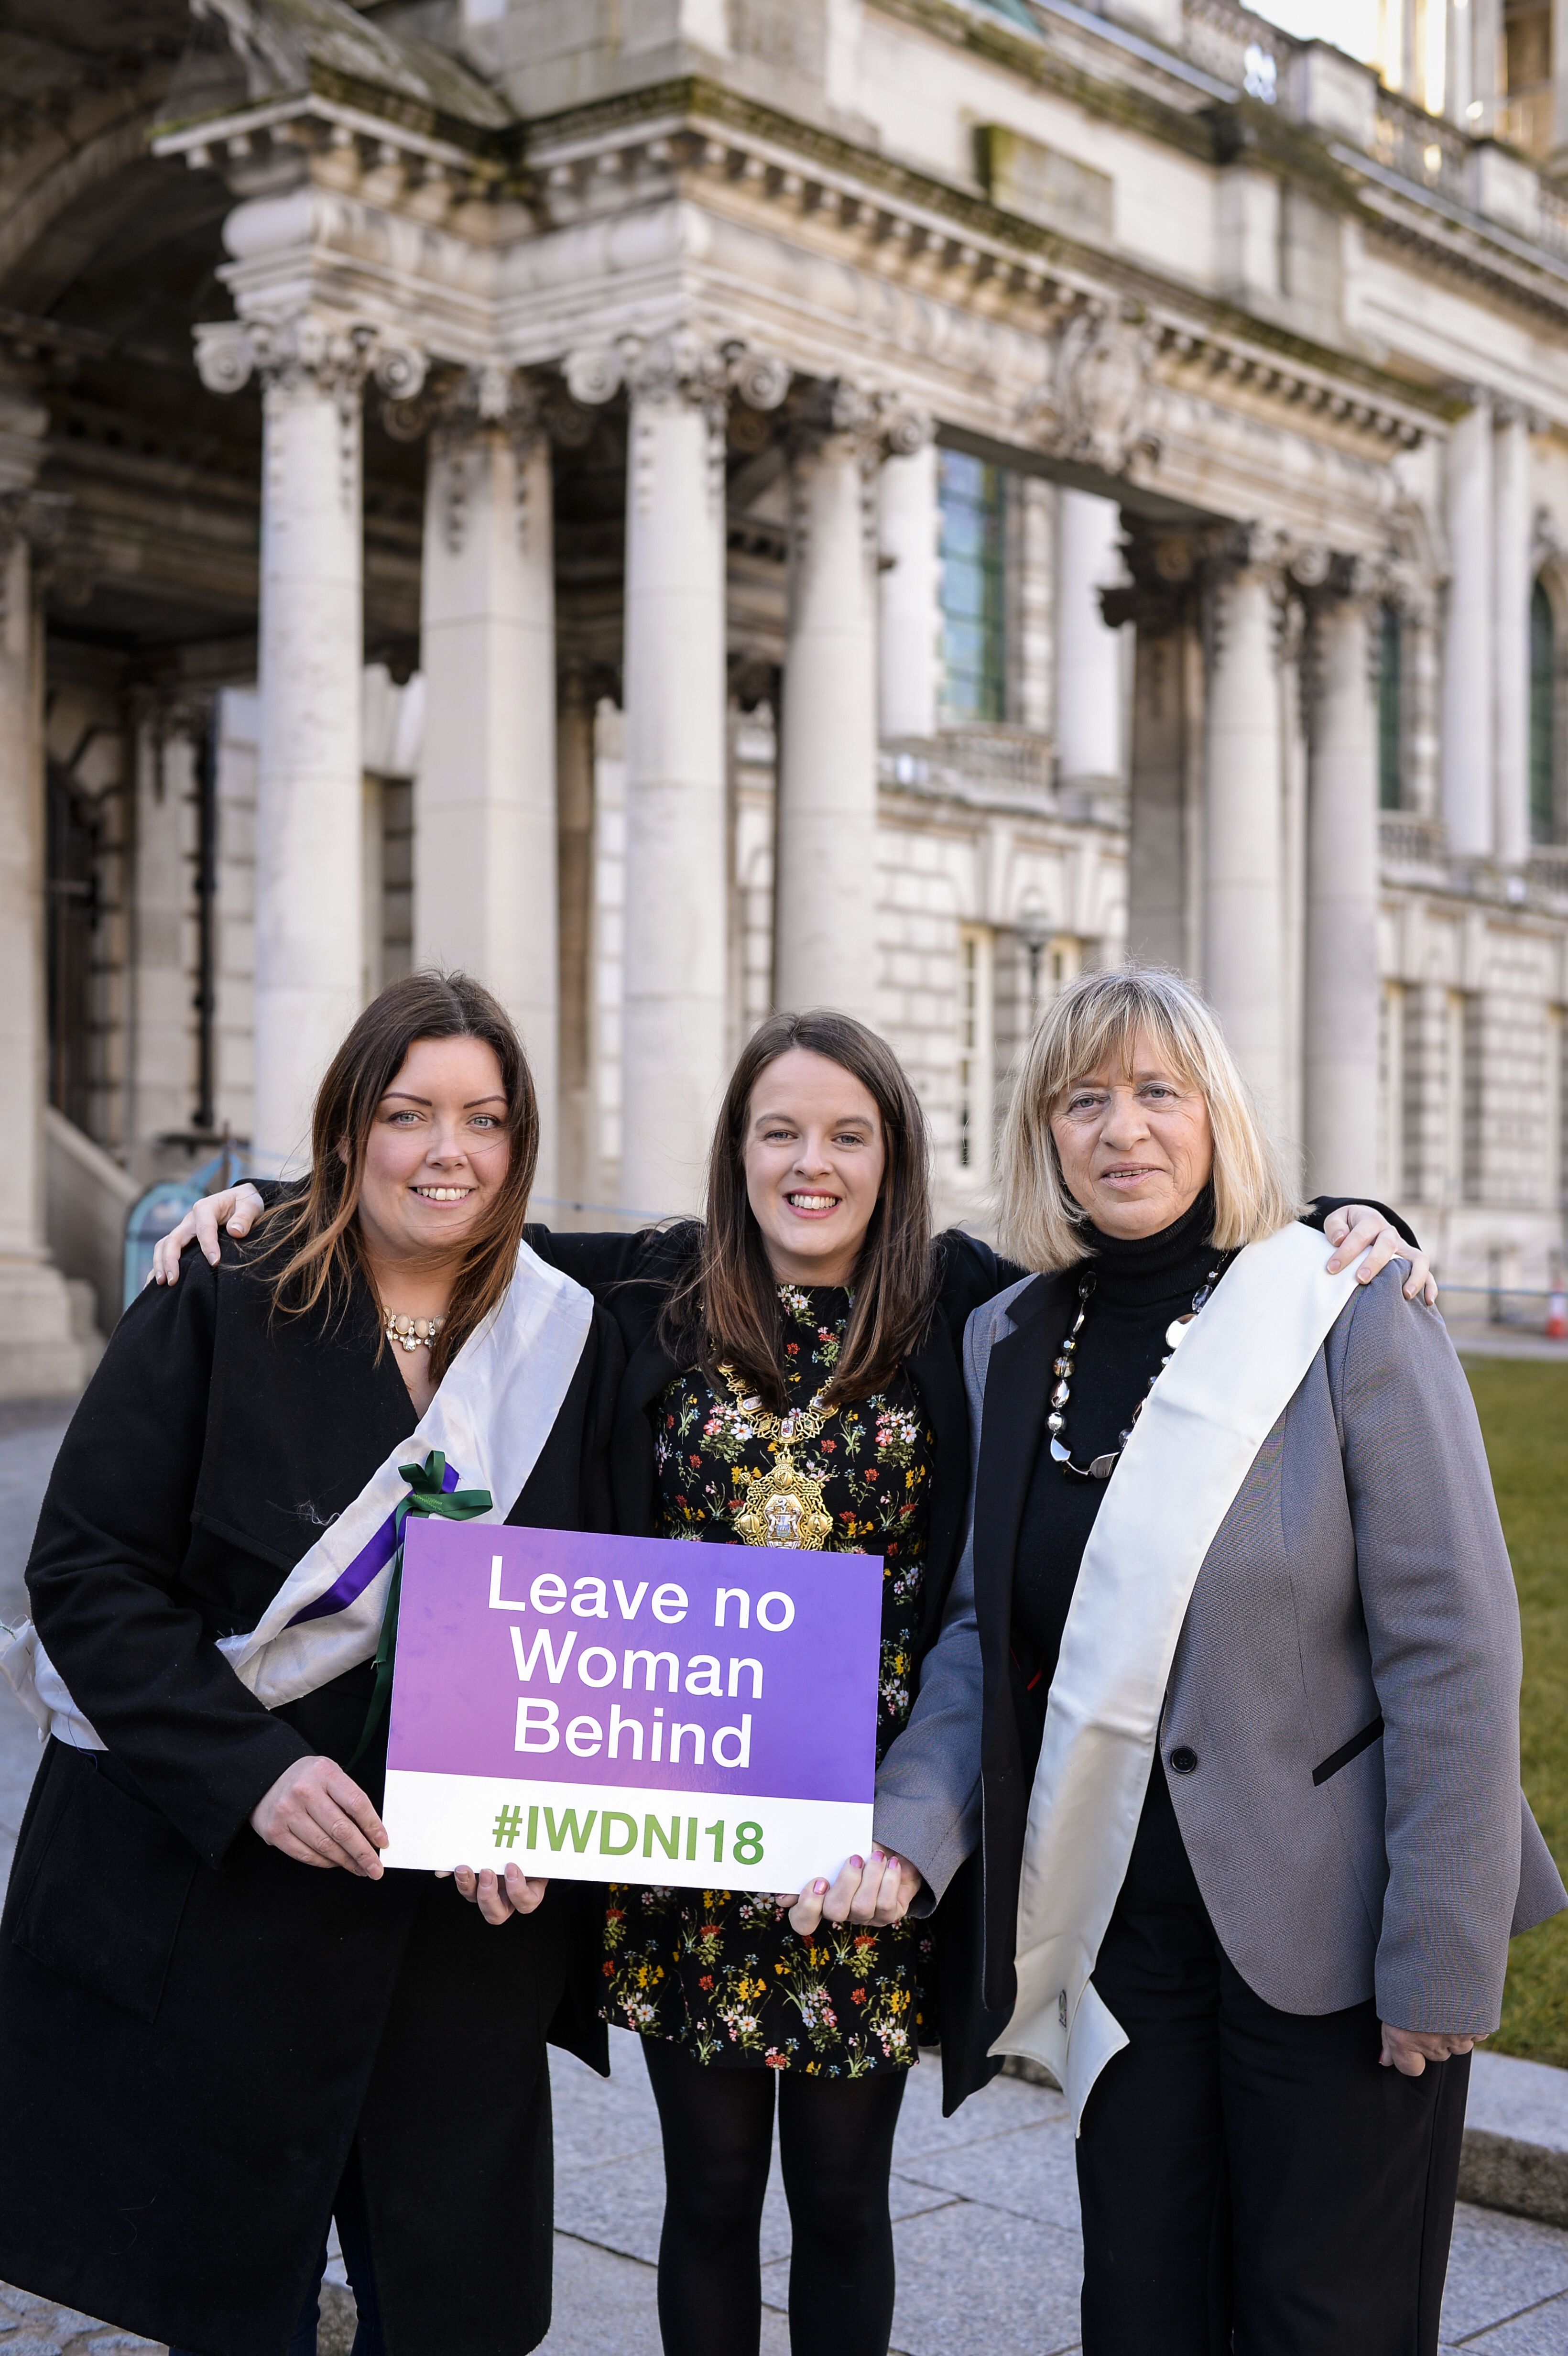 IWD organisers vow 'No Woman Left Behind' in fight for equality